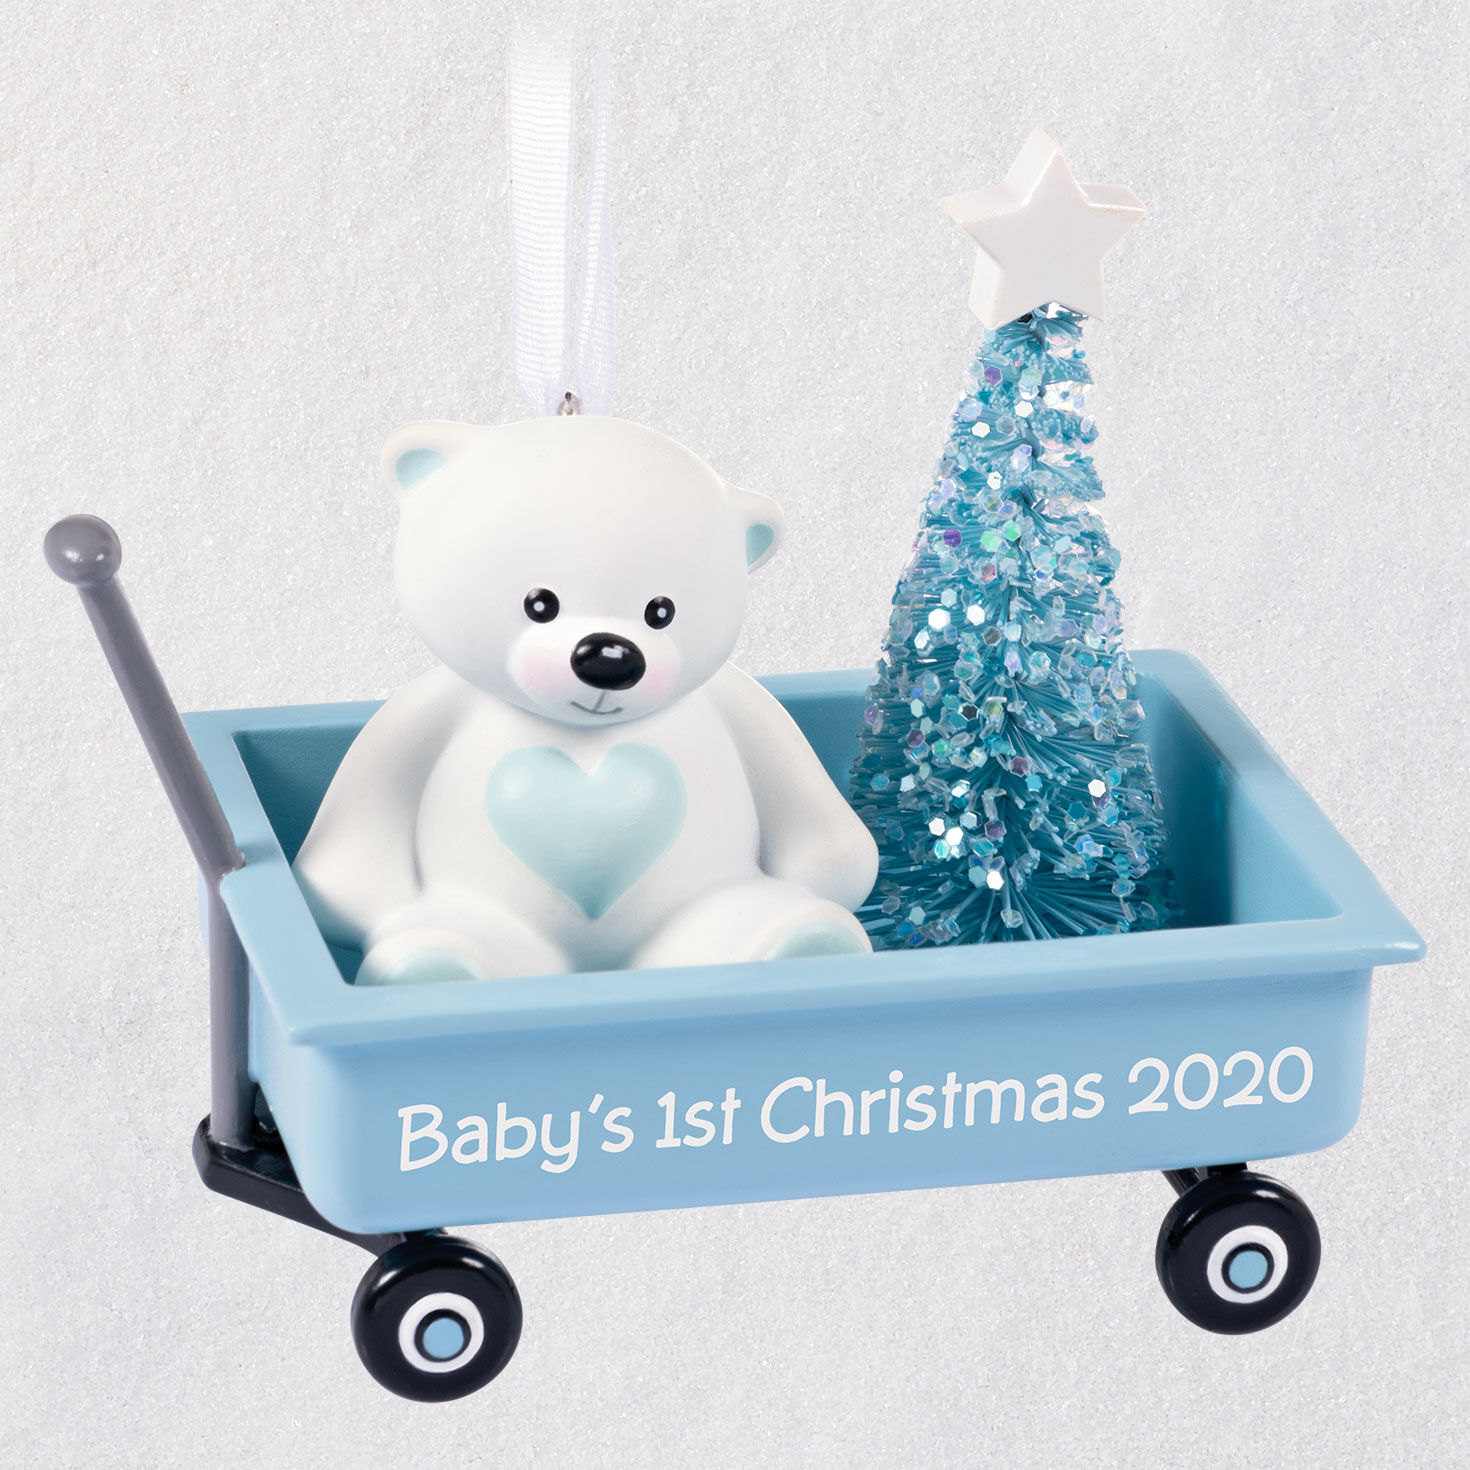 Grandsons First Christmas Ornament 2020 Baby Boy's First Christmas Blue Wagon 2020 Ornament   Keepsake